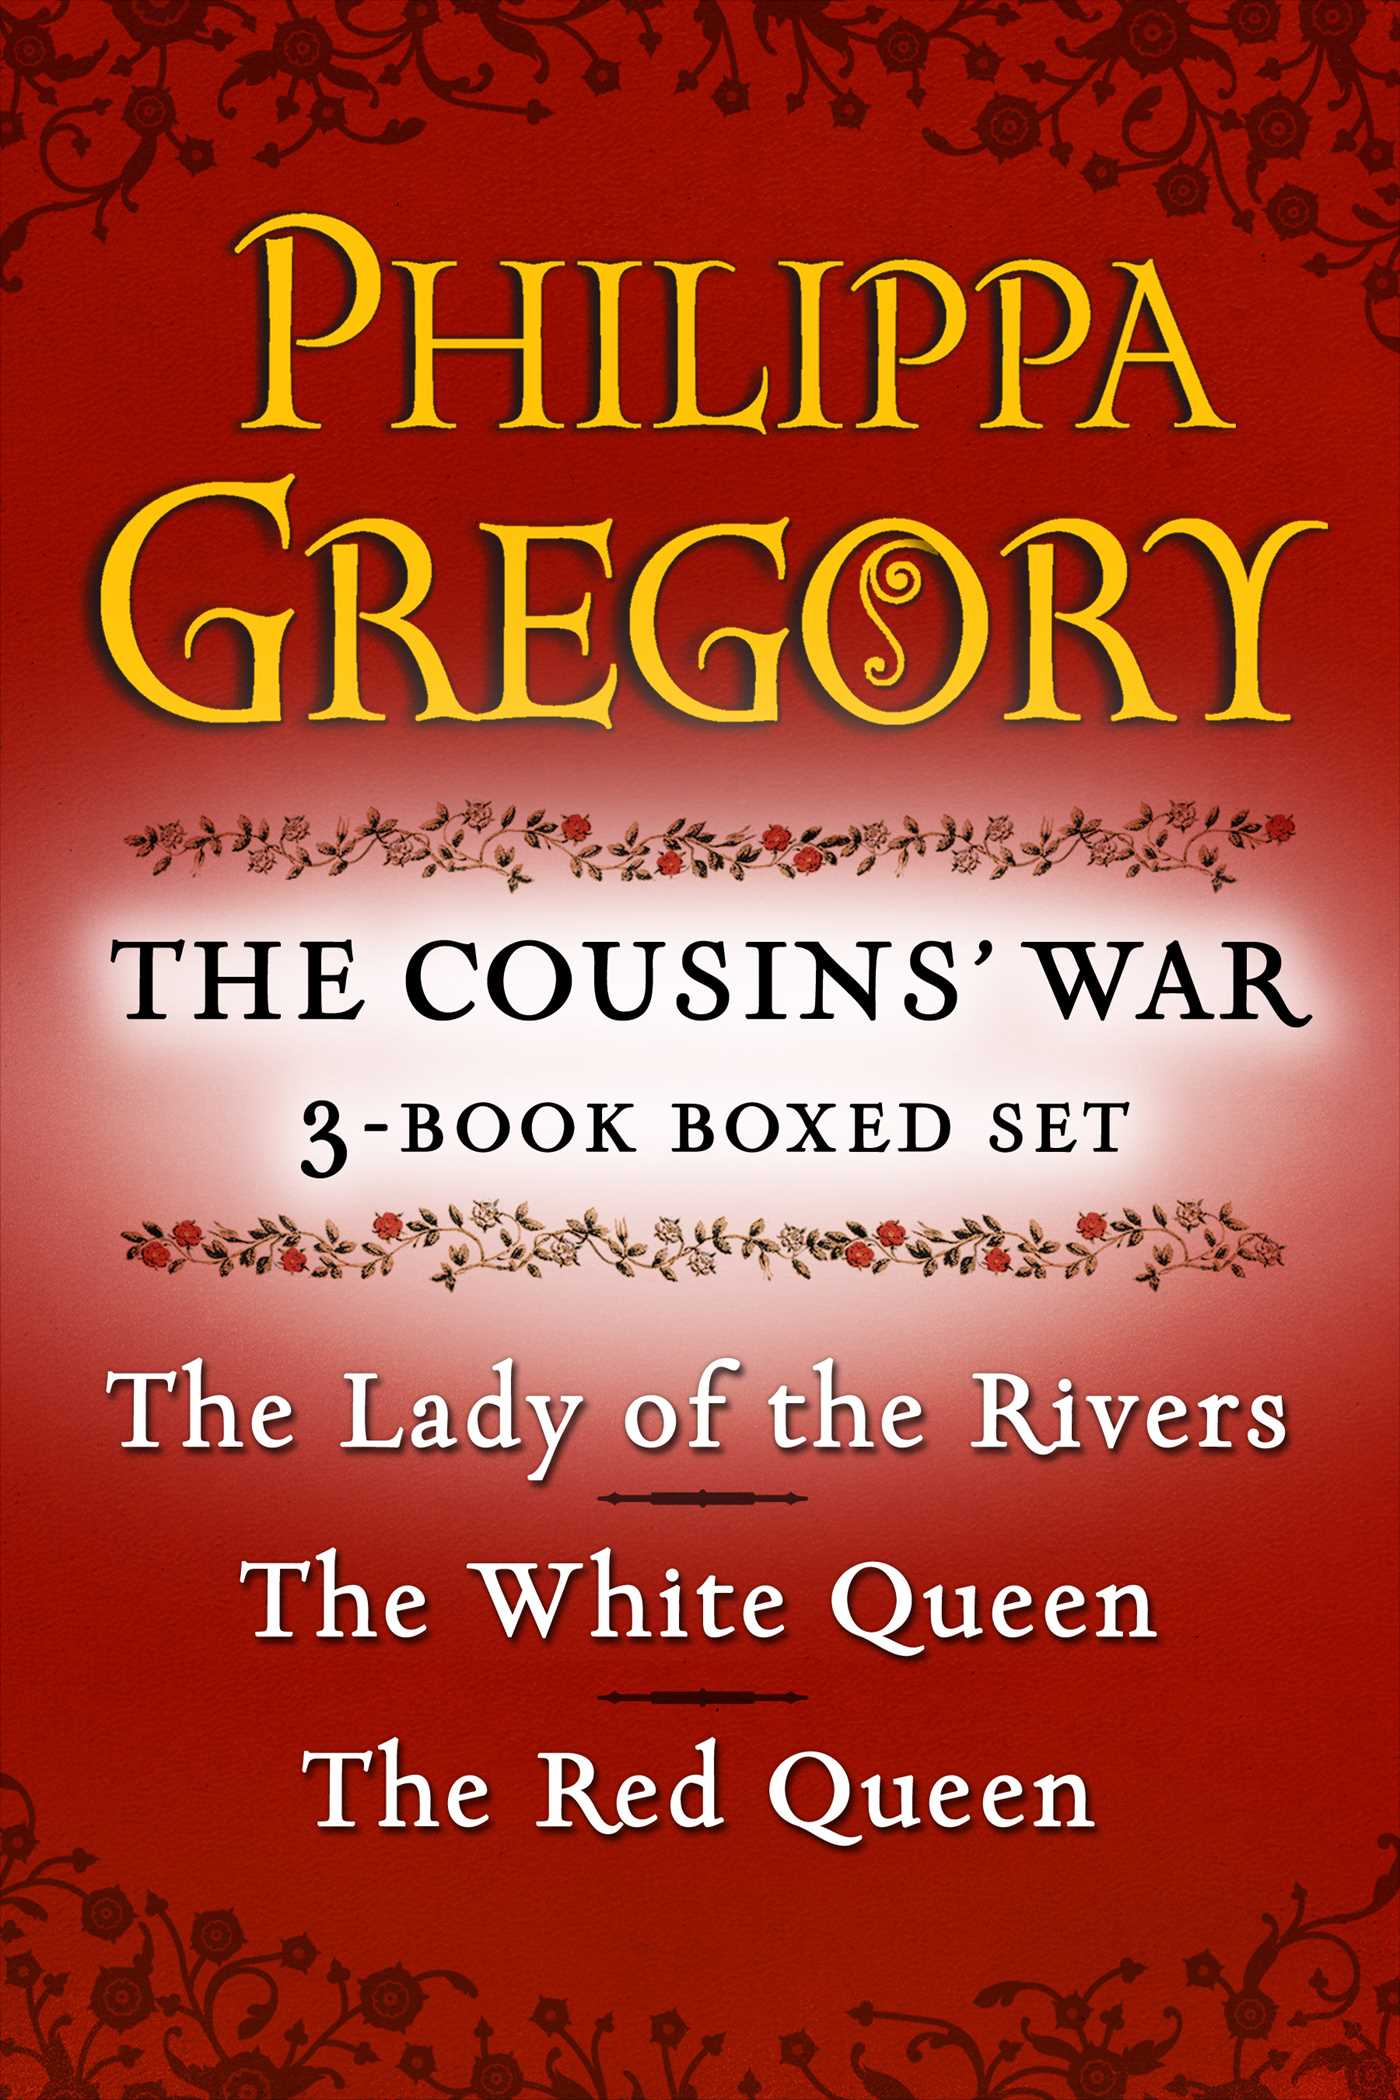 Philippa gregorys the cousins war 3 book boxed set 9781451682953 hr